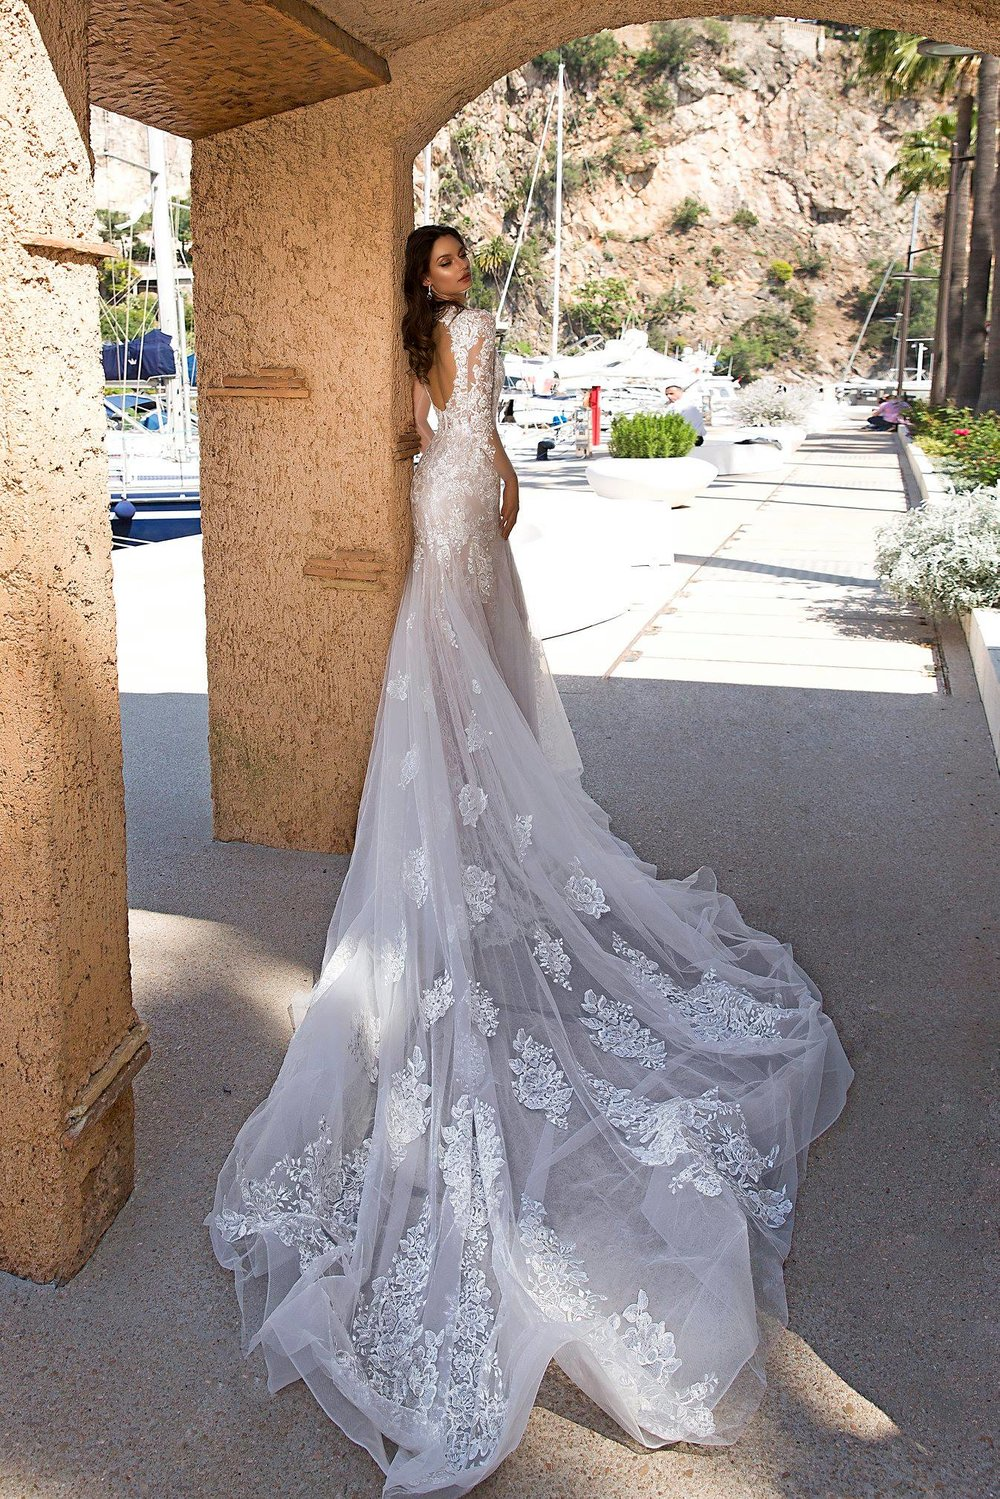 DONATELLA wedding dress by TINA VALERDI